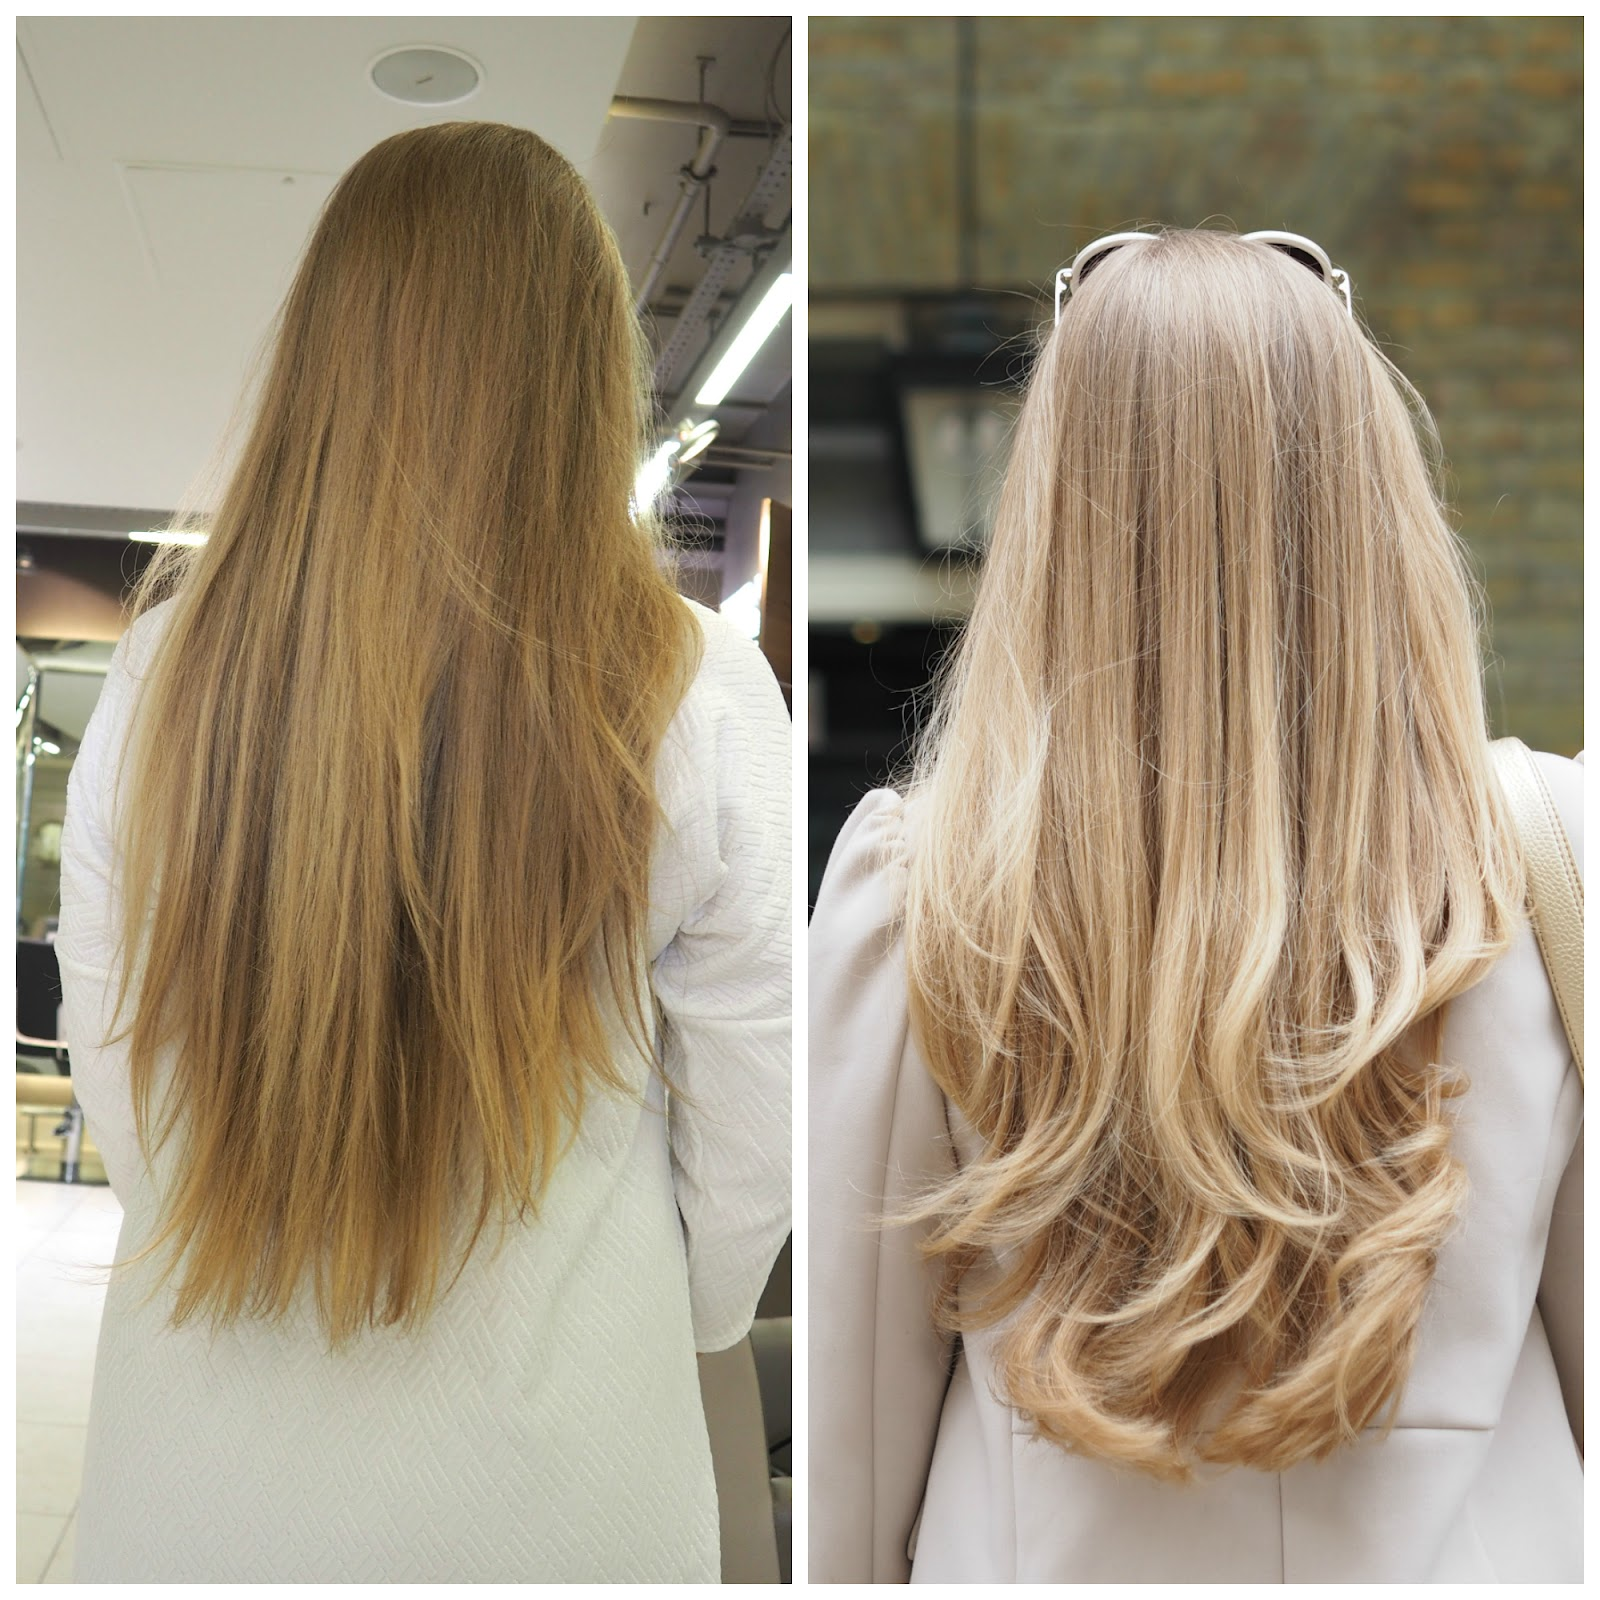 Katie Matthews hair, before and after a cut and blow dry at the Richard Ward salon in Chelsea, London